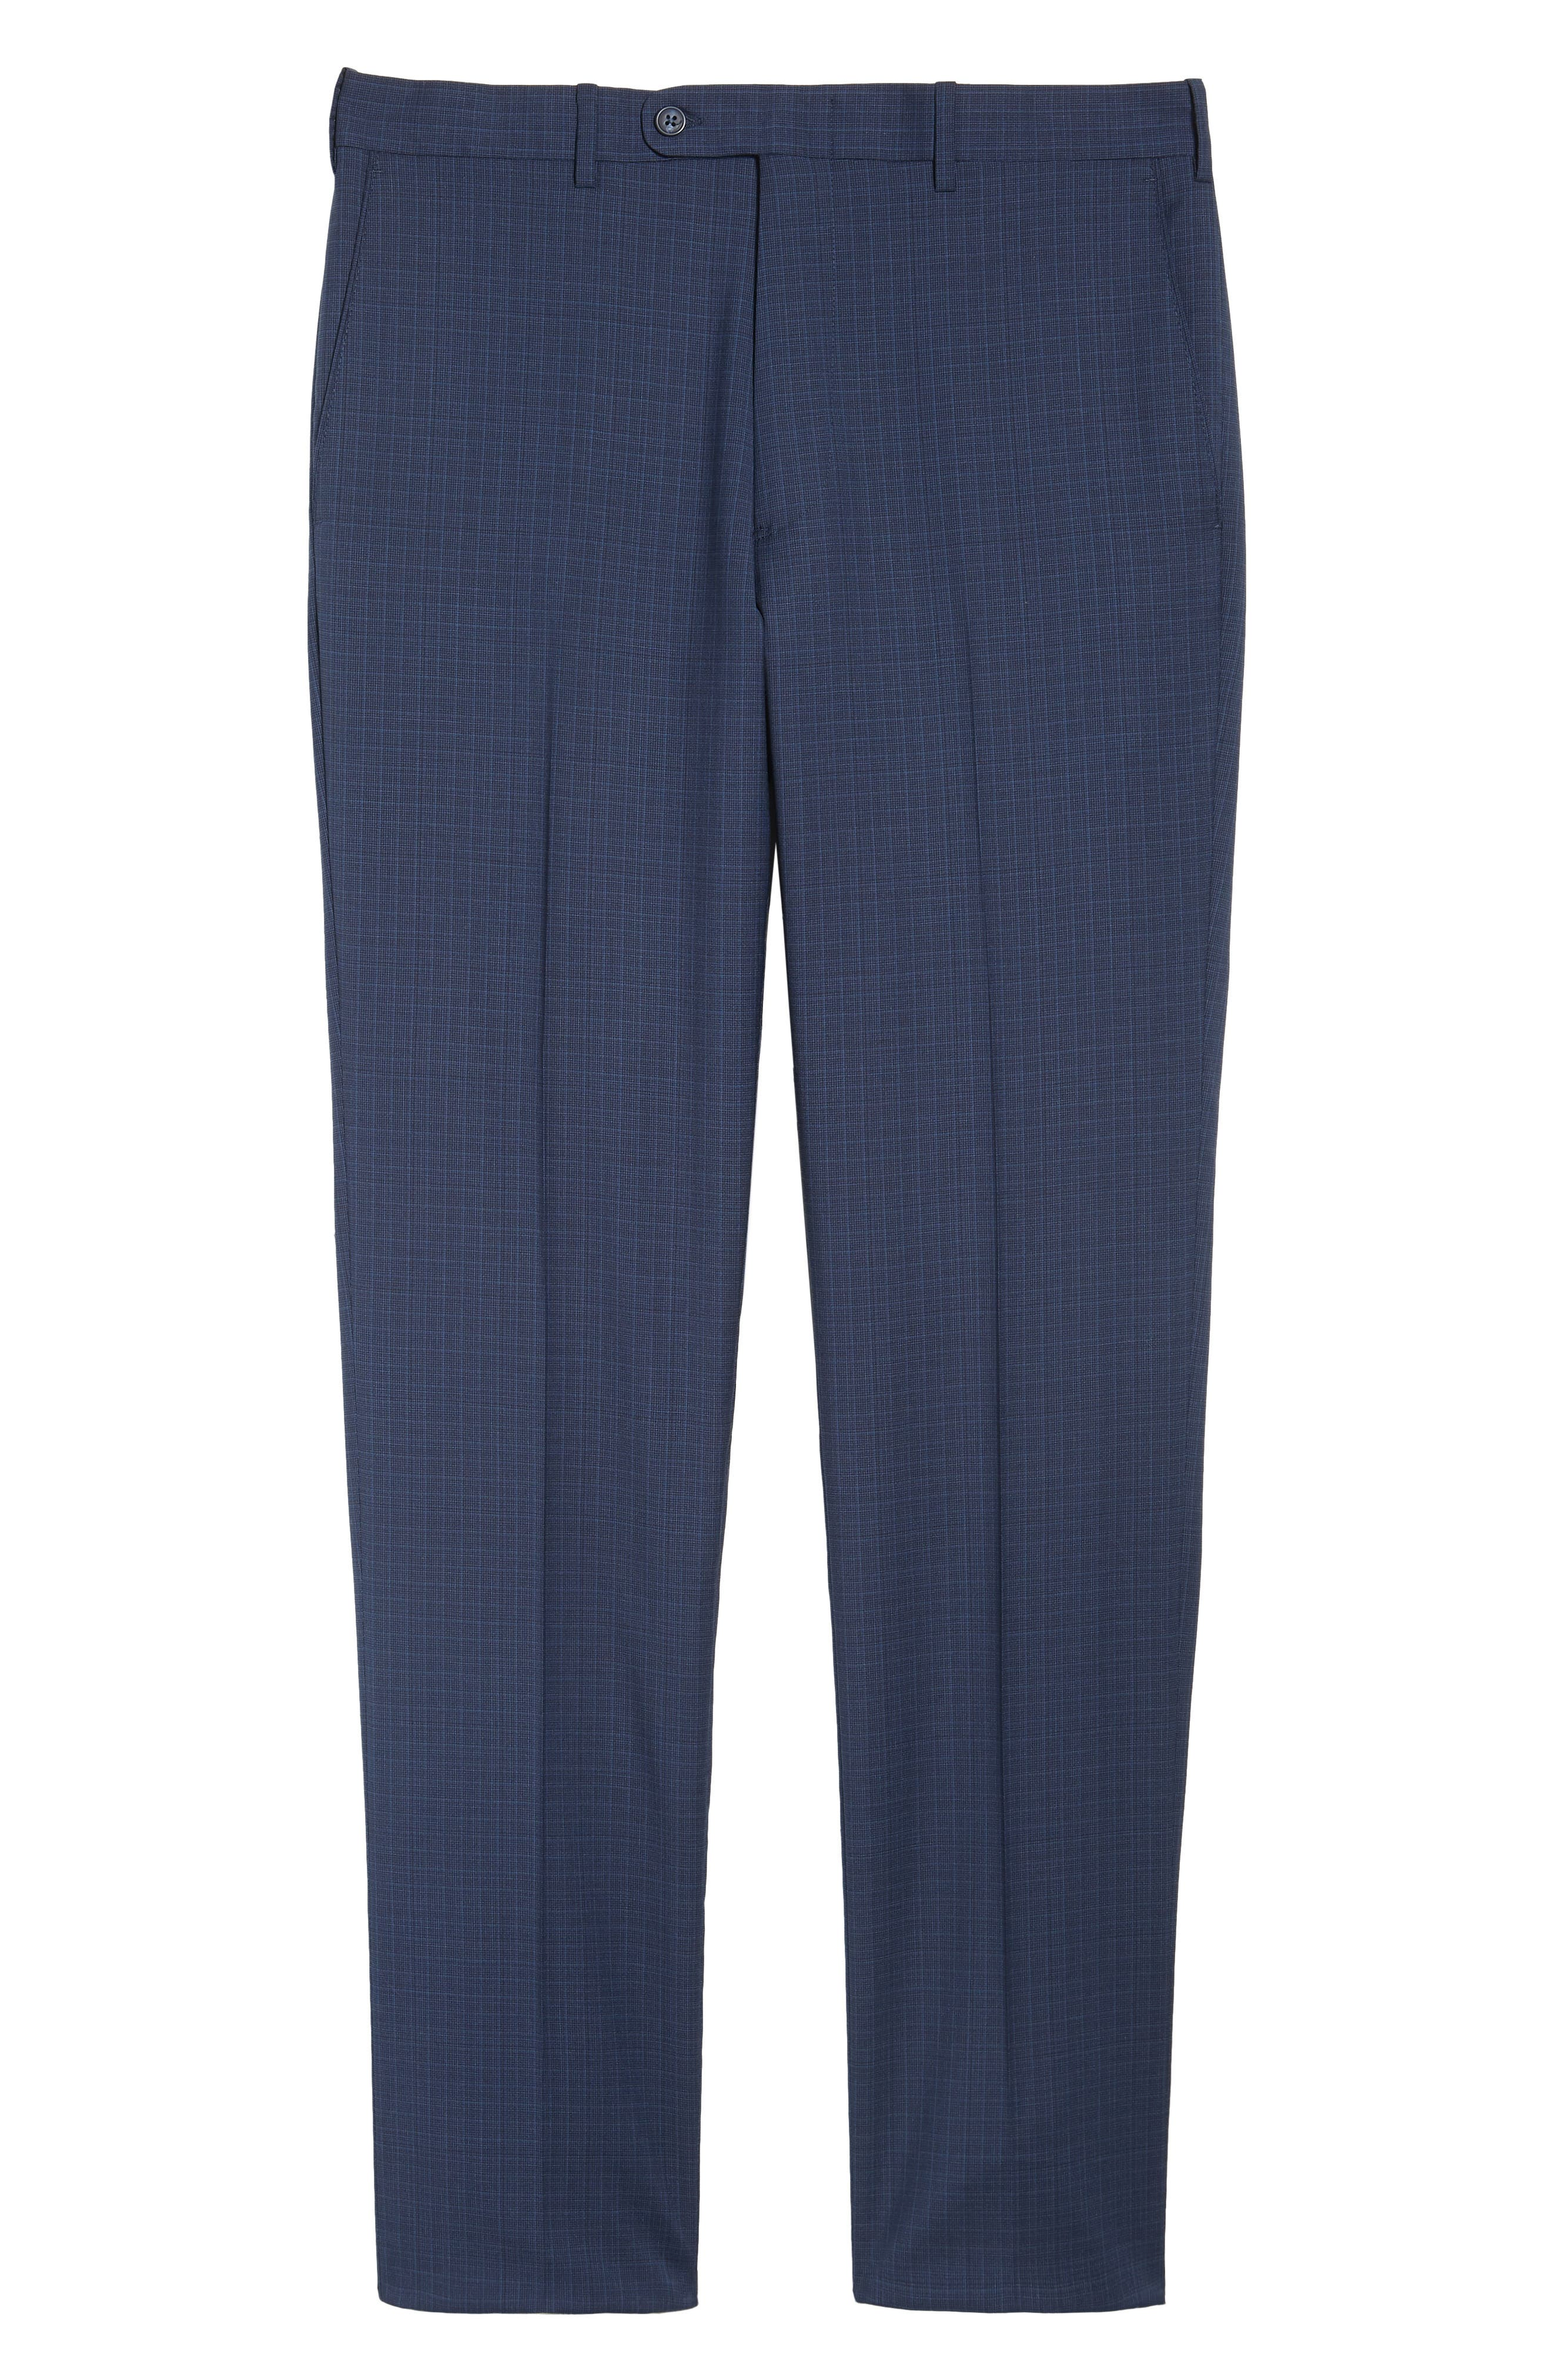 Flat Front Check Wool Trousers,                             Alternate thumbnail 18, color,